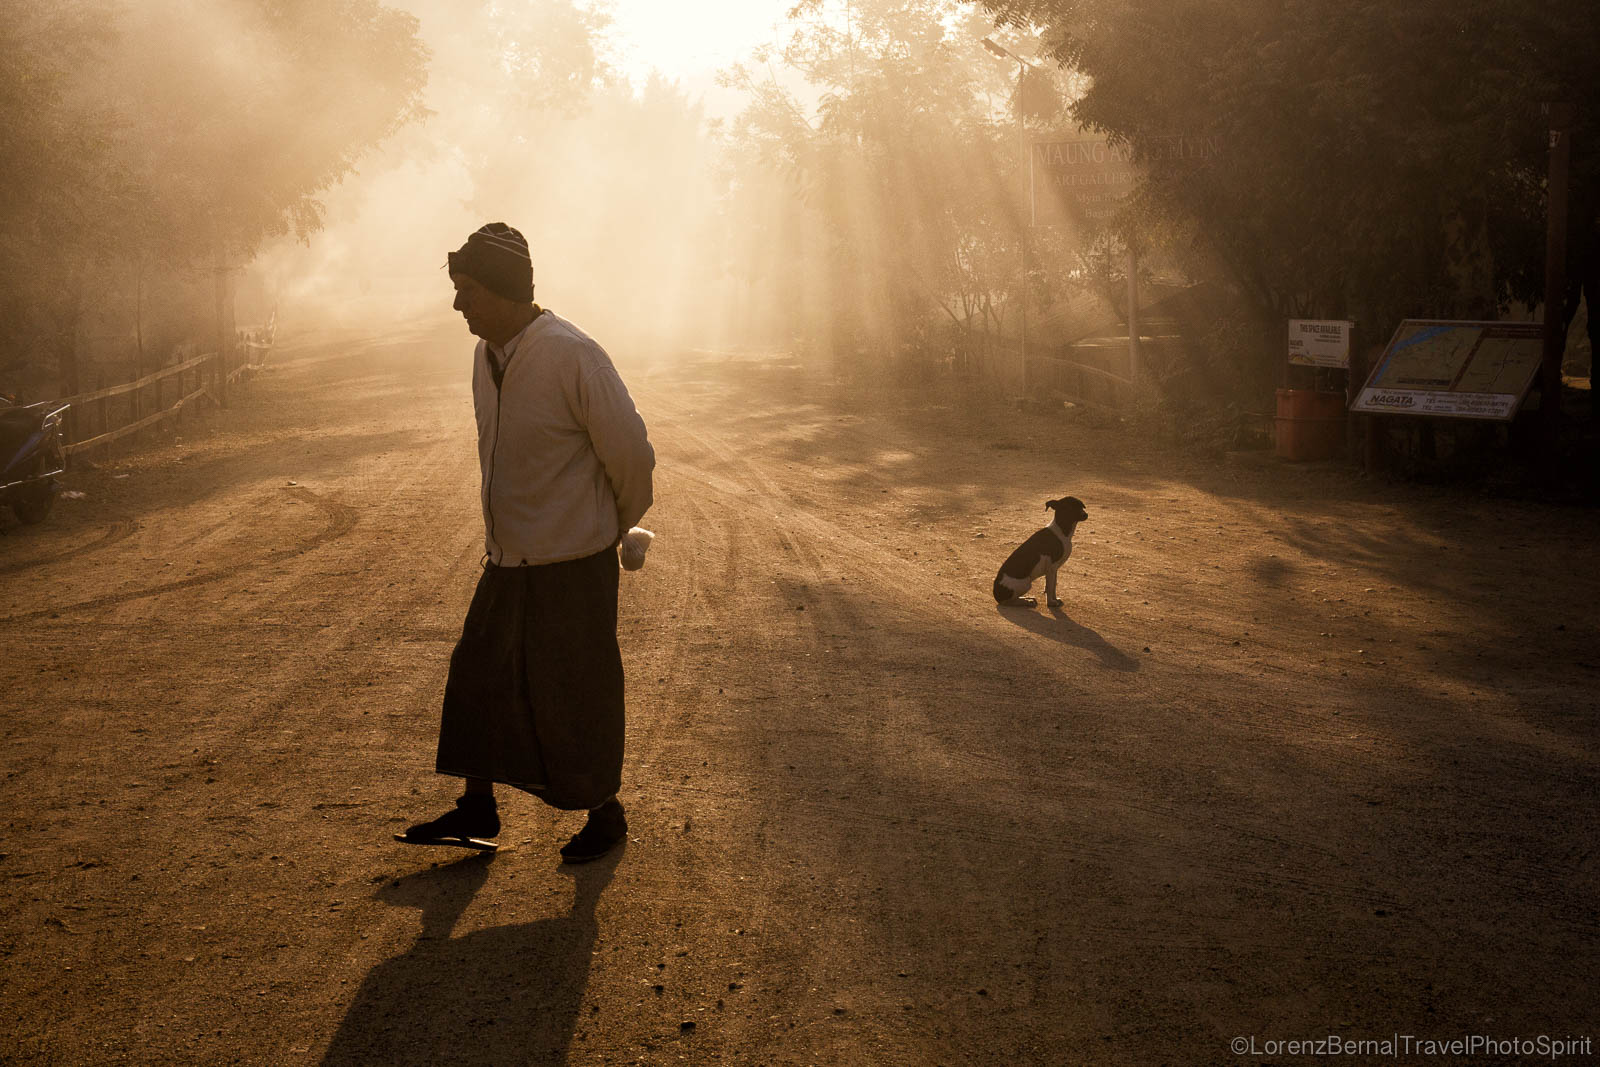 A man and a dog in the backlights : Street scene in the villages around Bagan, Myanmar